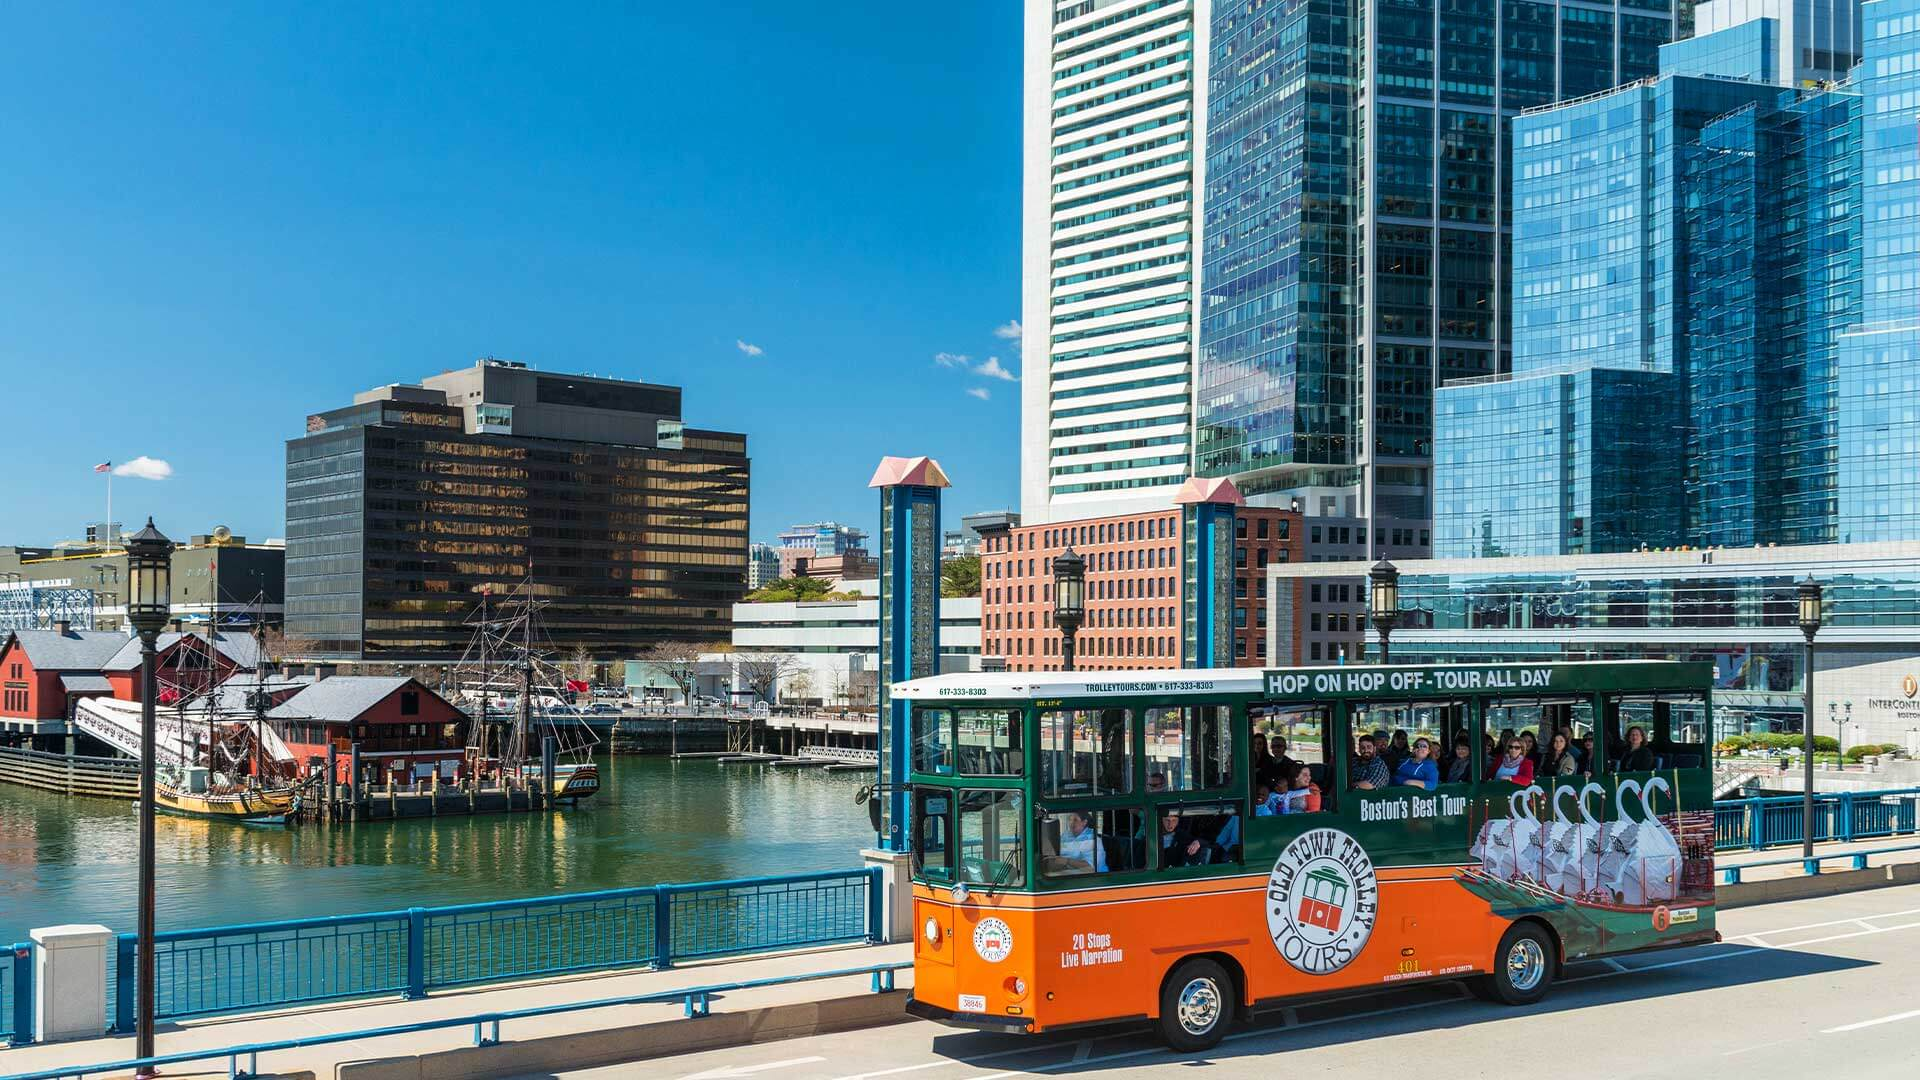 Scenic view of a trolly in Boston